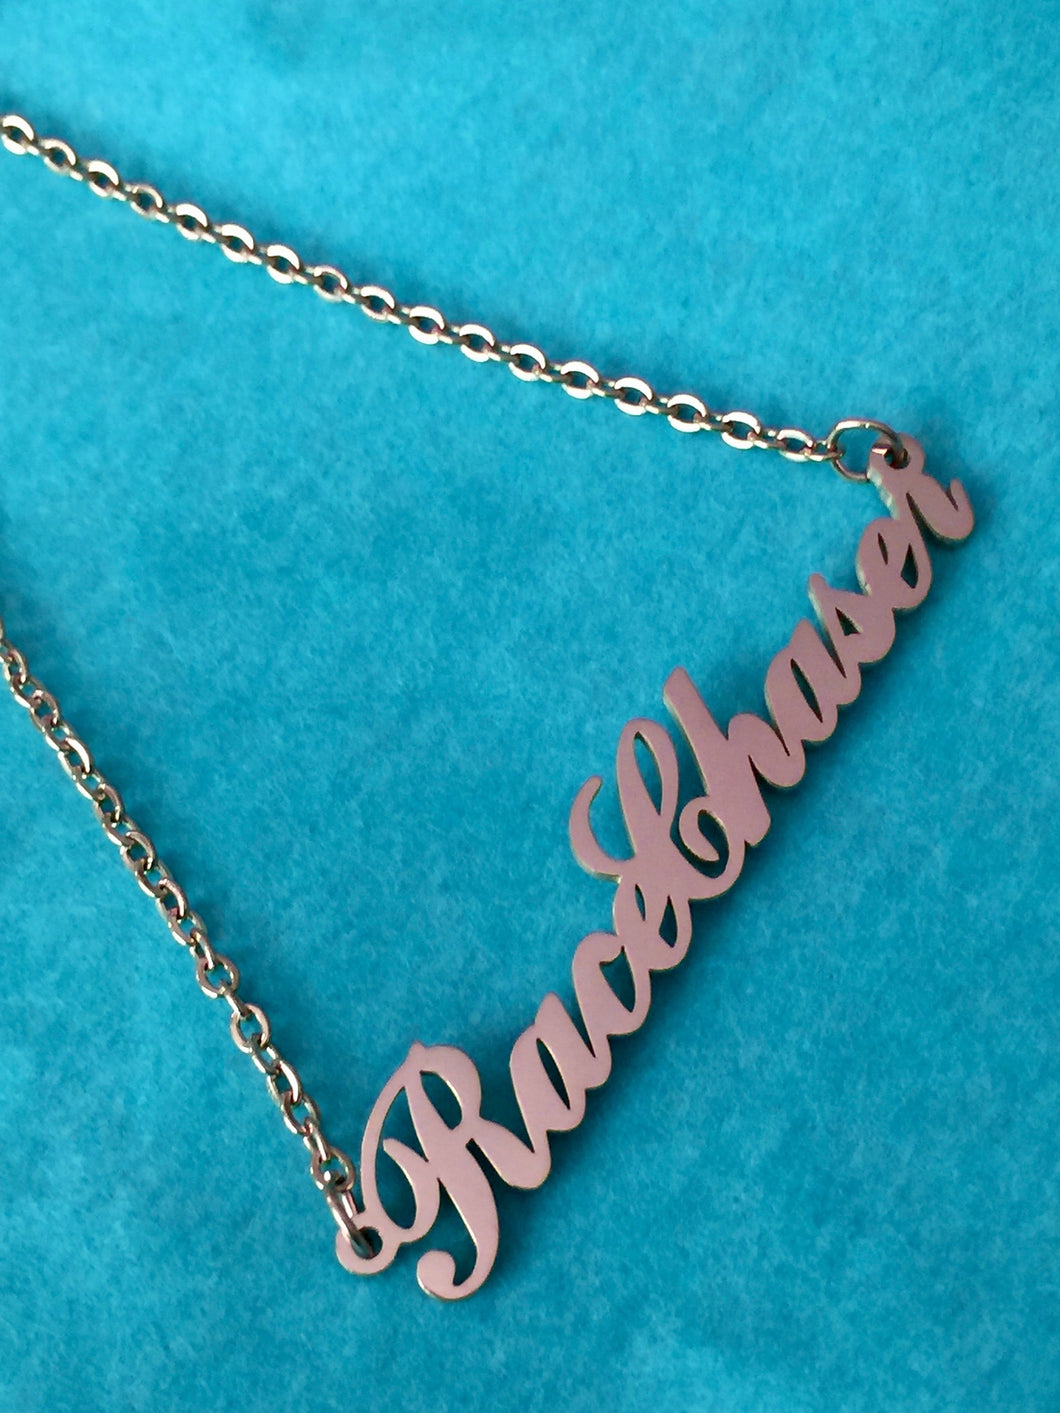 RaceChaser necklace